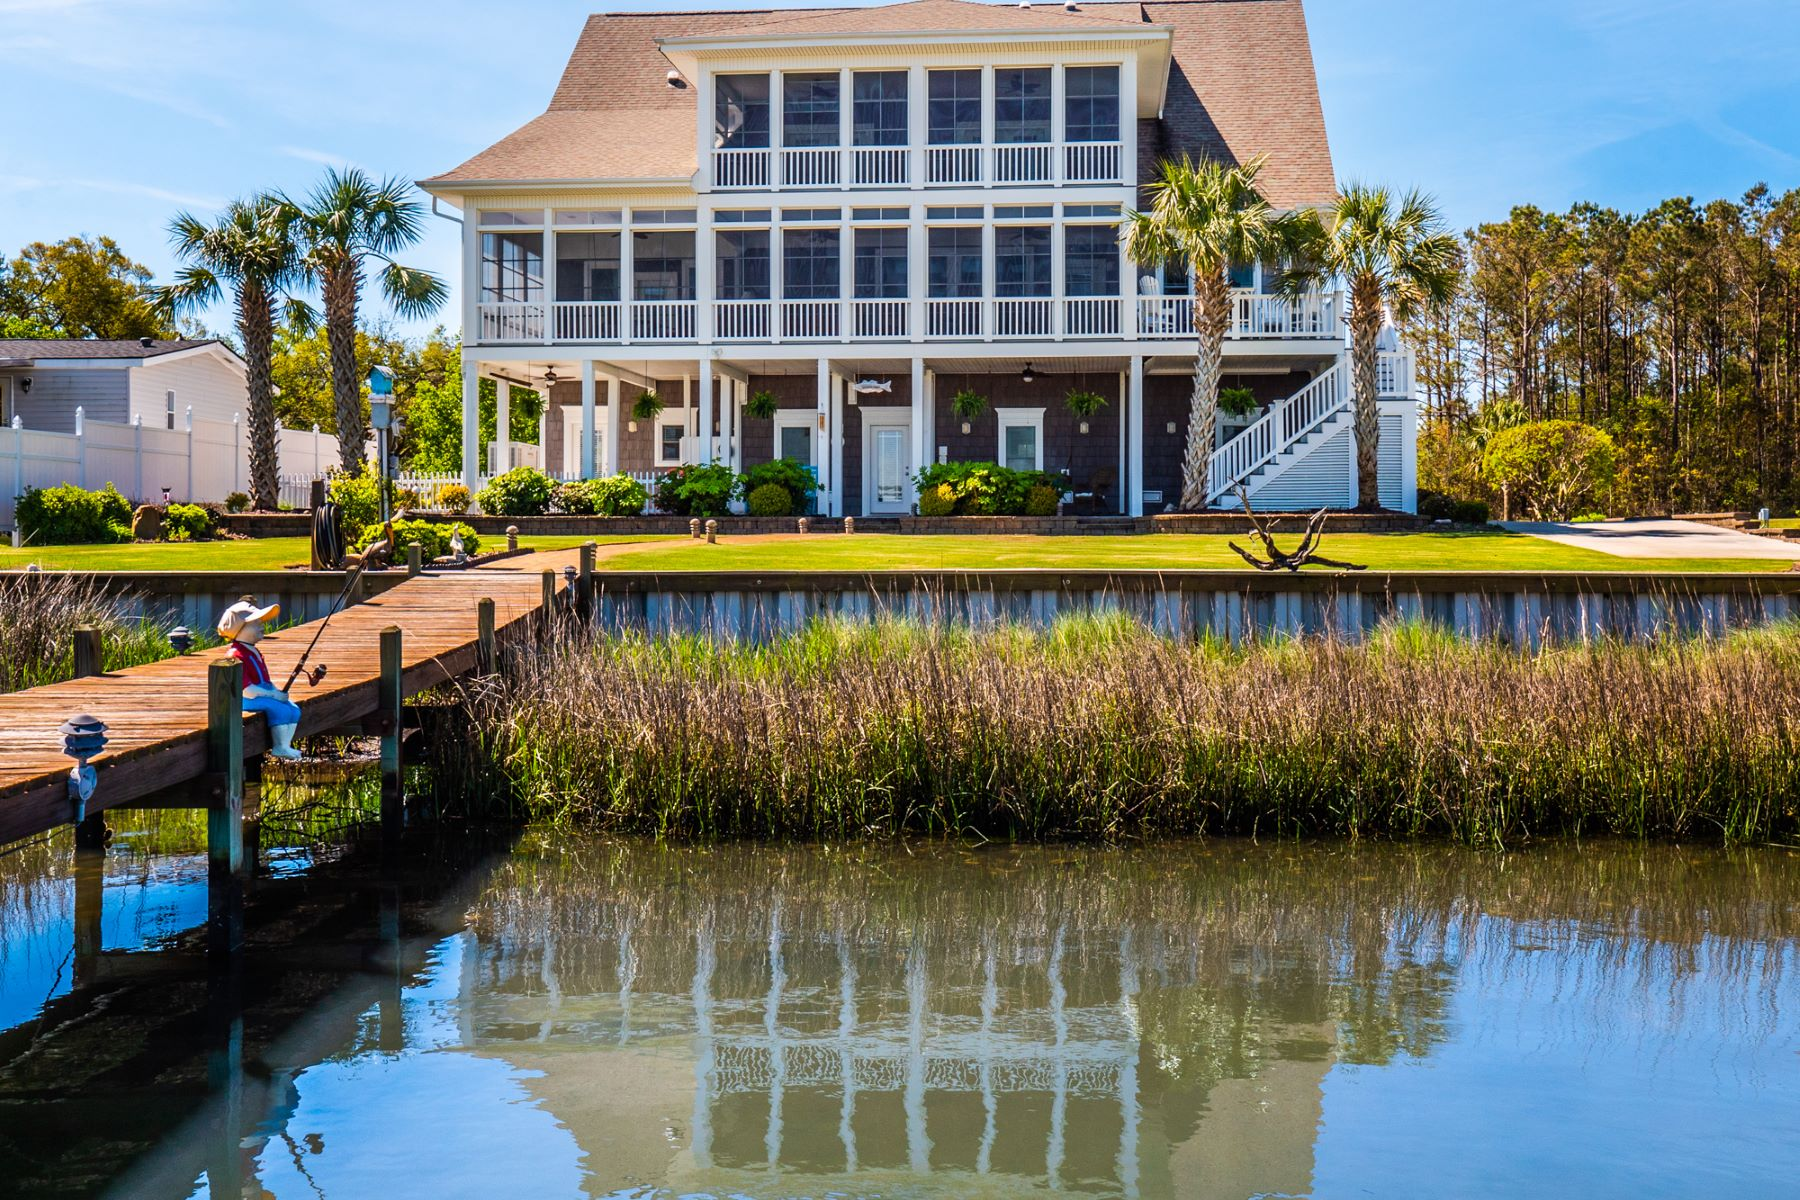 Single Family Homes for Sale at Refined Waterfront Oasis in Sneads Ferry 383 Beacon Lane Sneads Ferry, North Carolina 28460 United States